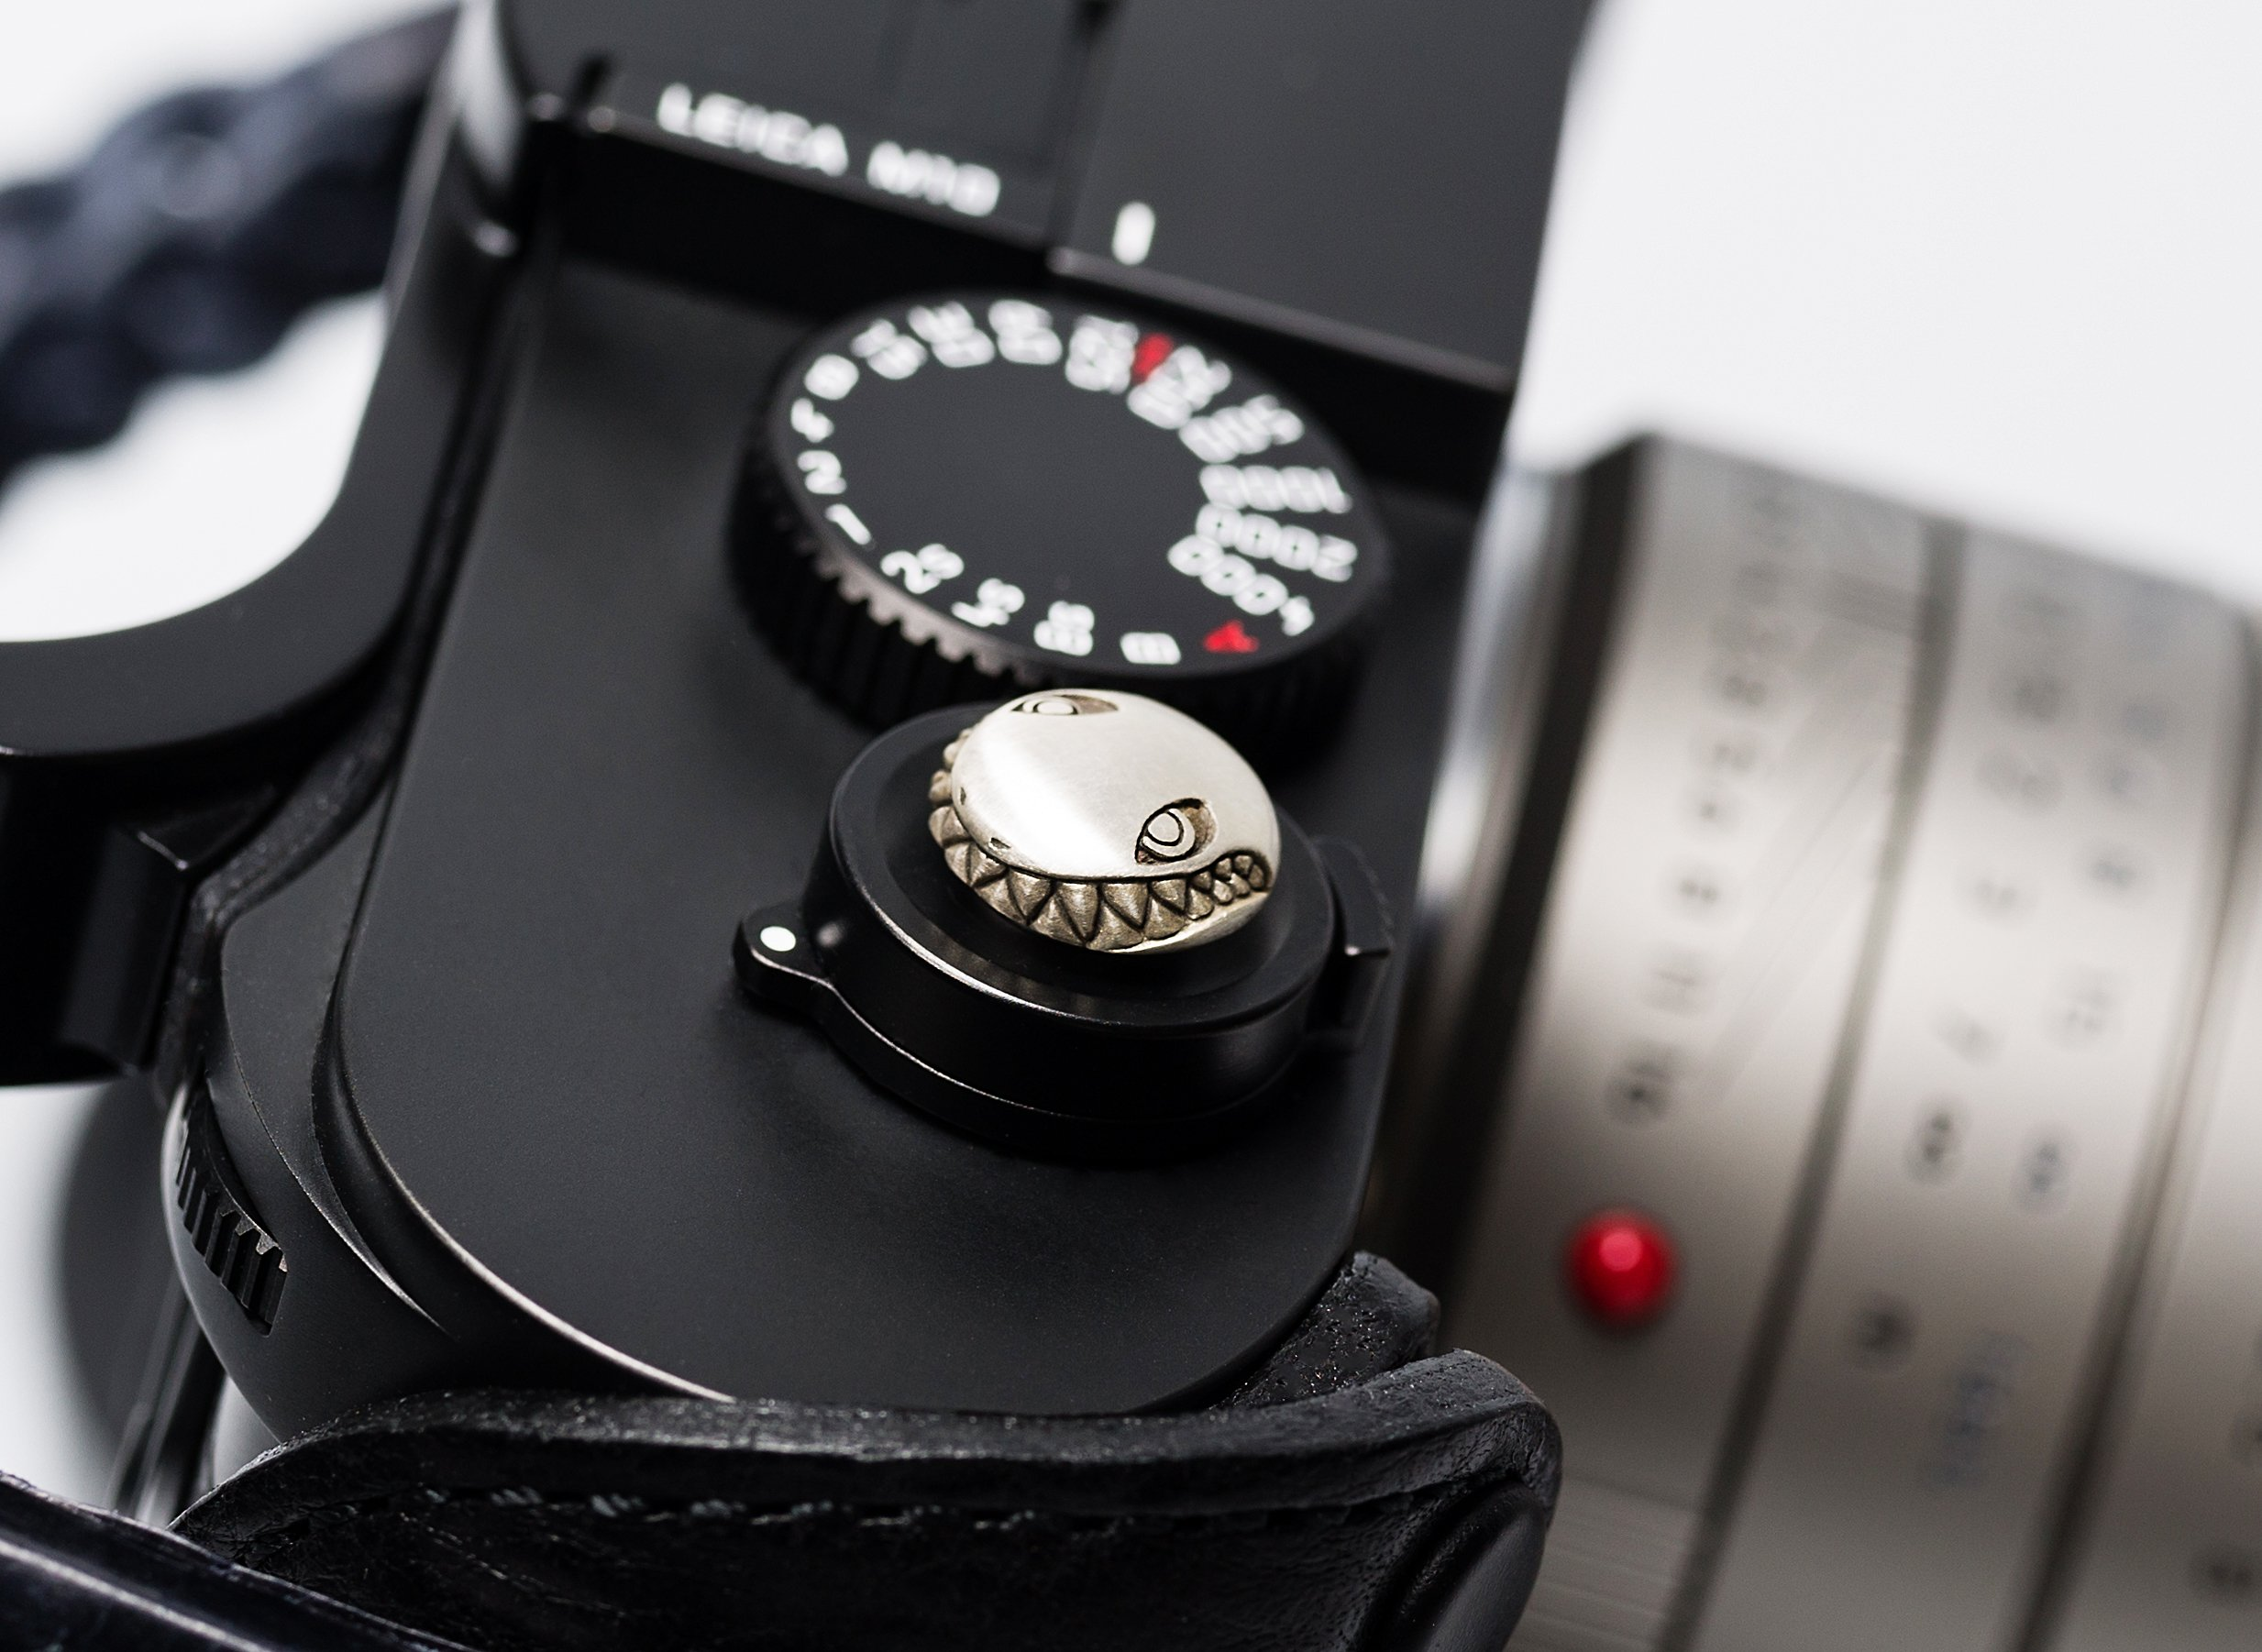 Soft Shutter Release Button Tiger Shark Sterling Silver Handcrafted by Jay Tsujimara fits Leica M240 variants and M10